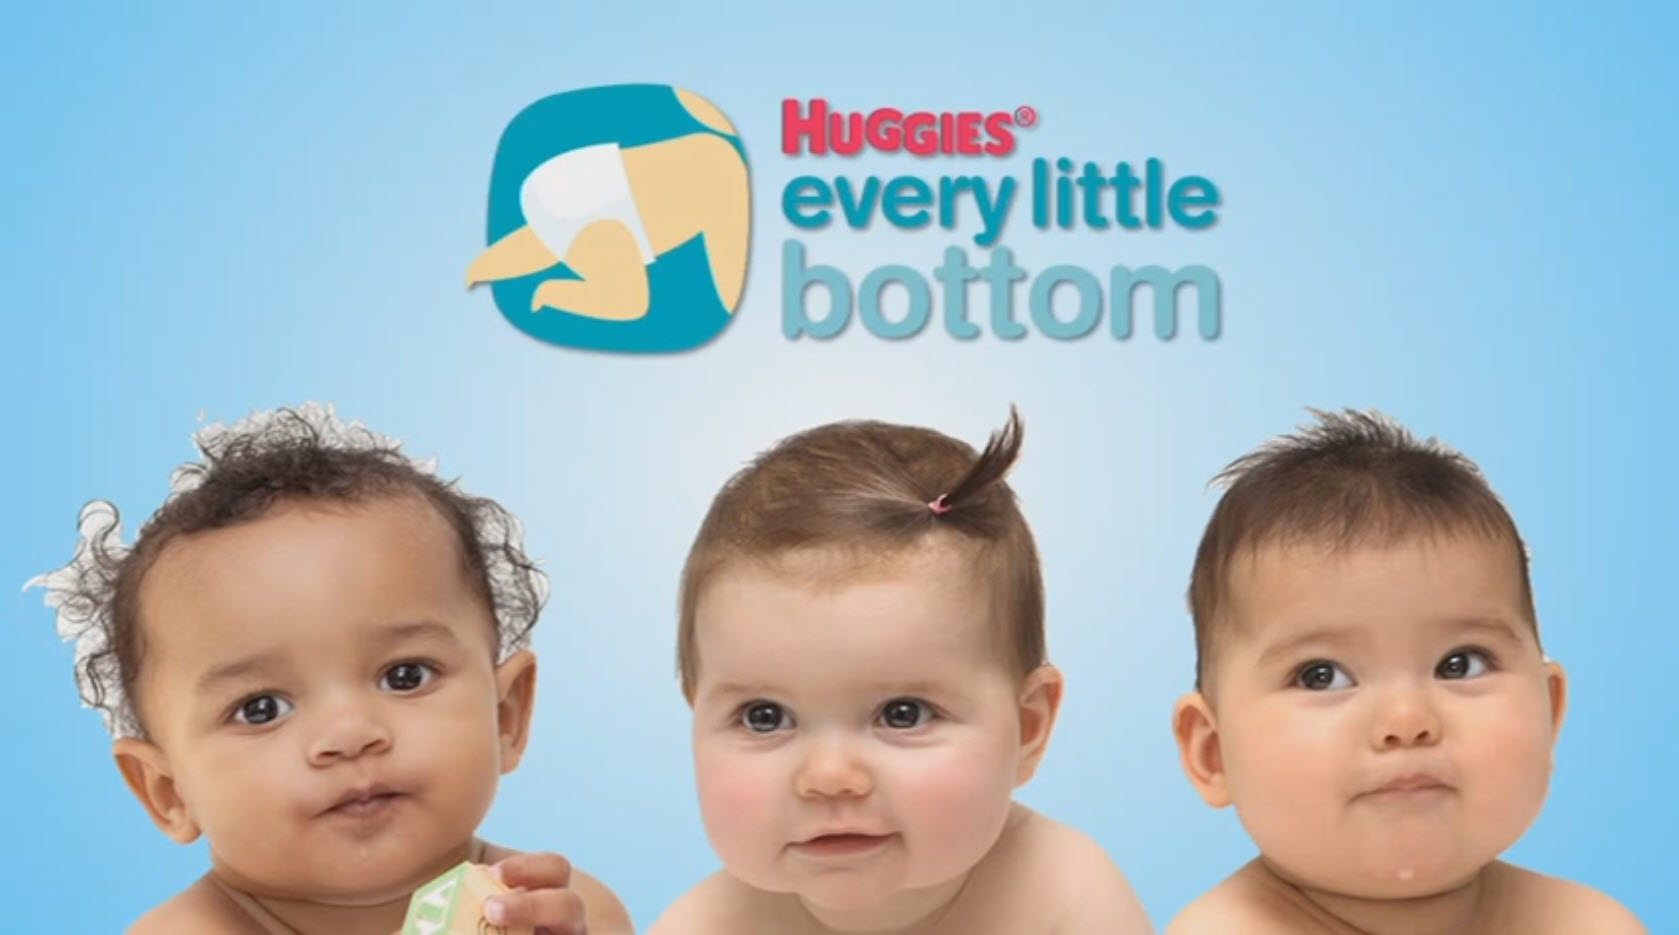 HUGGIES Every Little Bottom